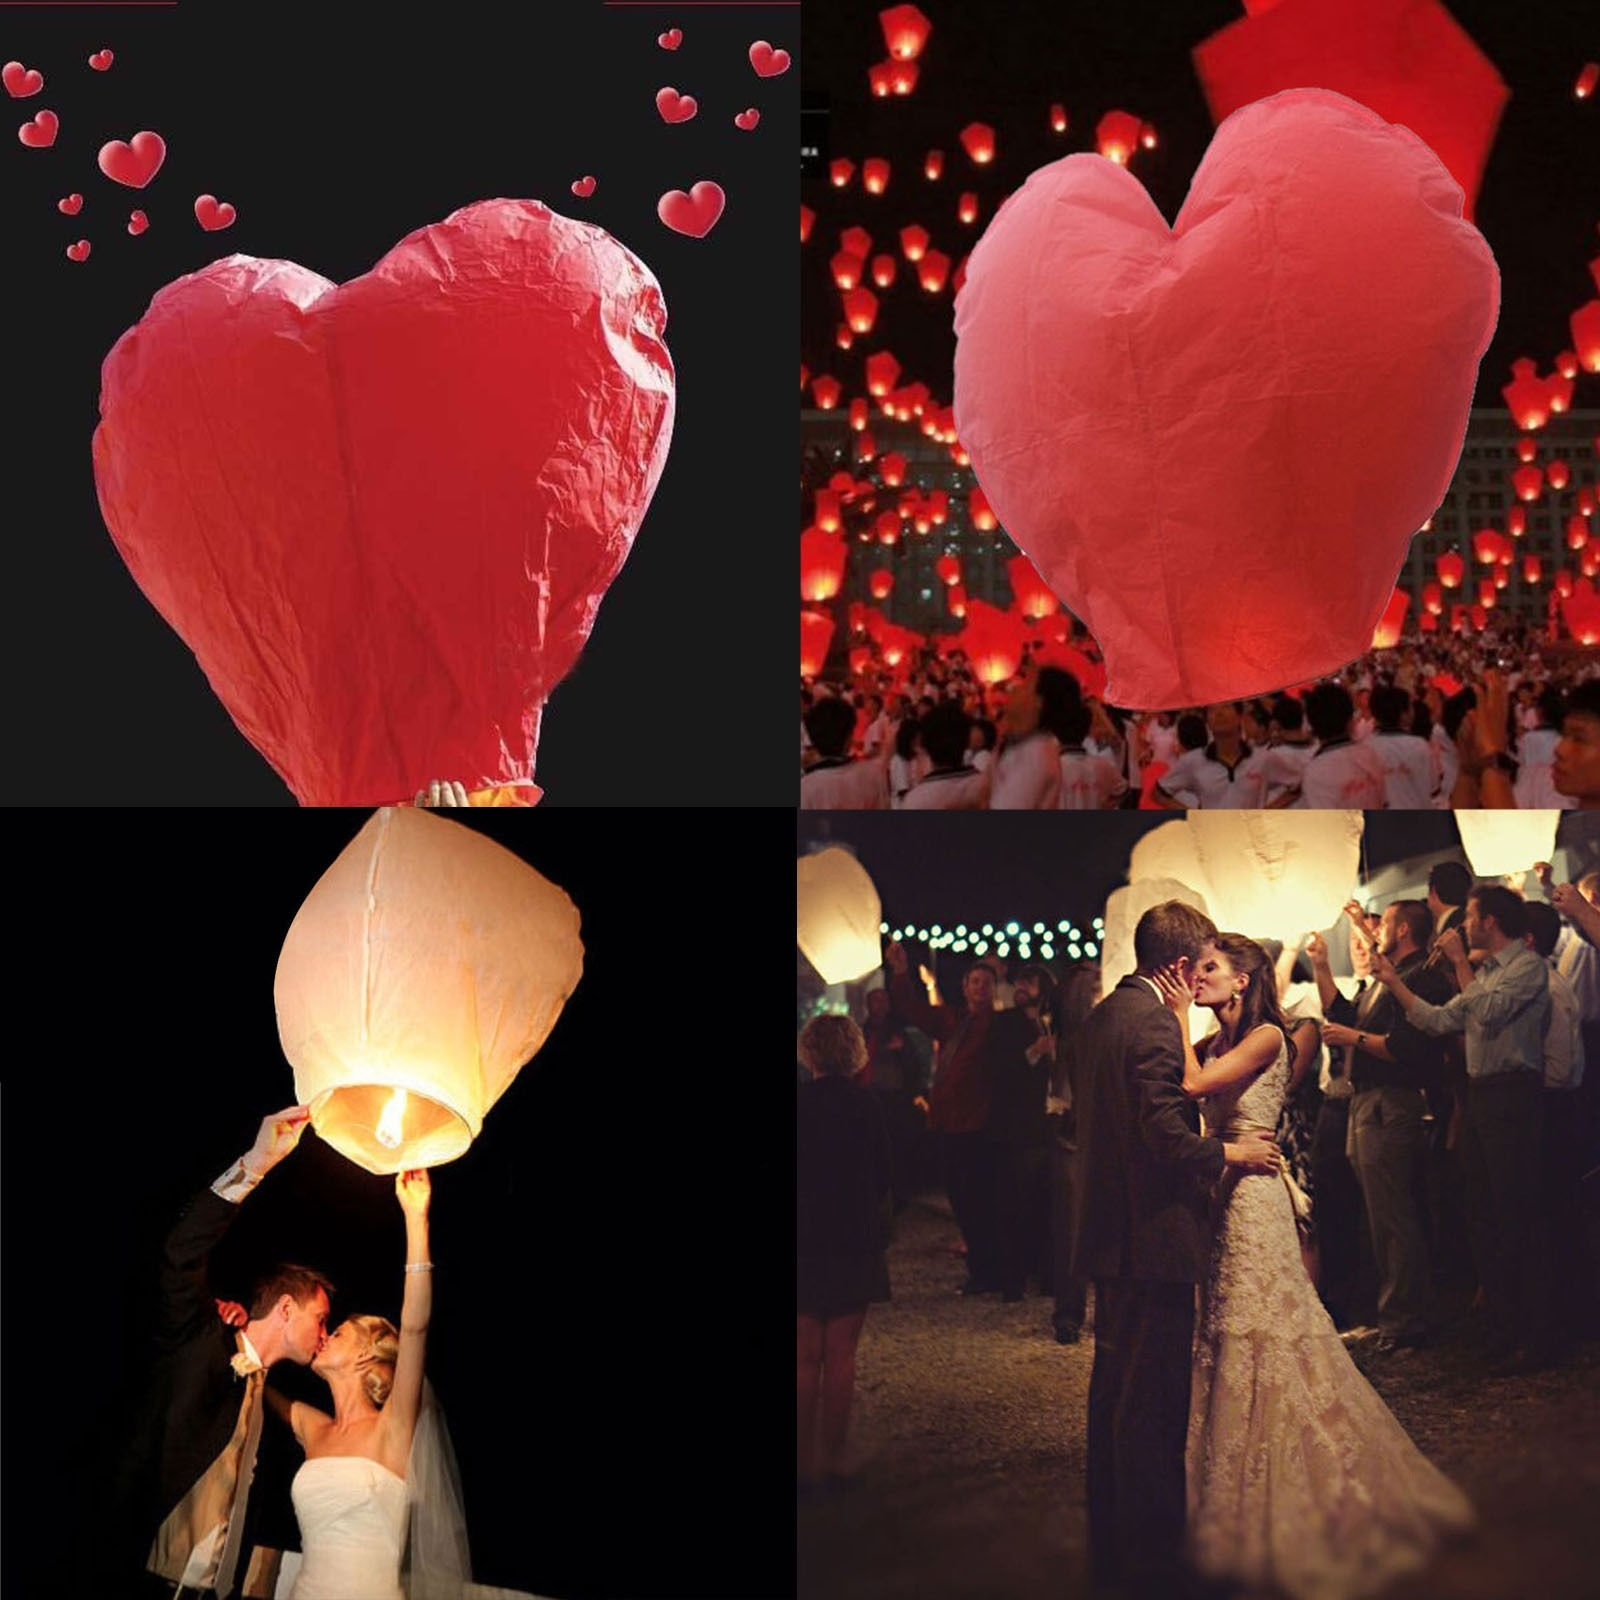 ChikeninPacket 10pcs White + 10pcs Heart Red Chinese Fire Flying Sky Paper Lanterns